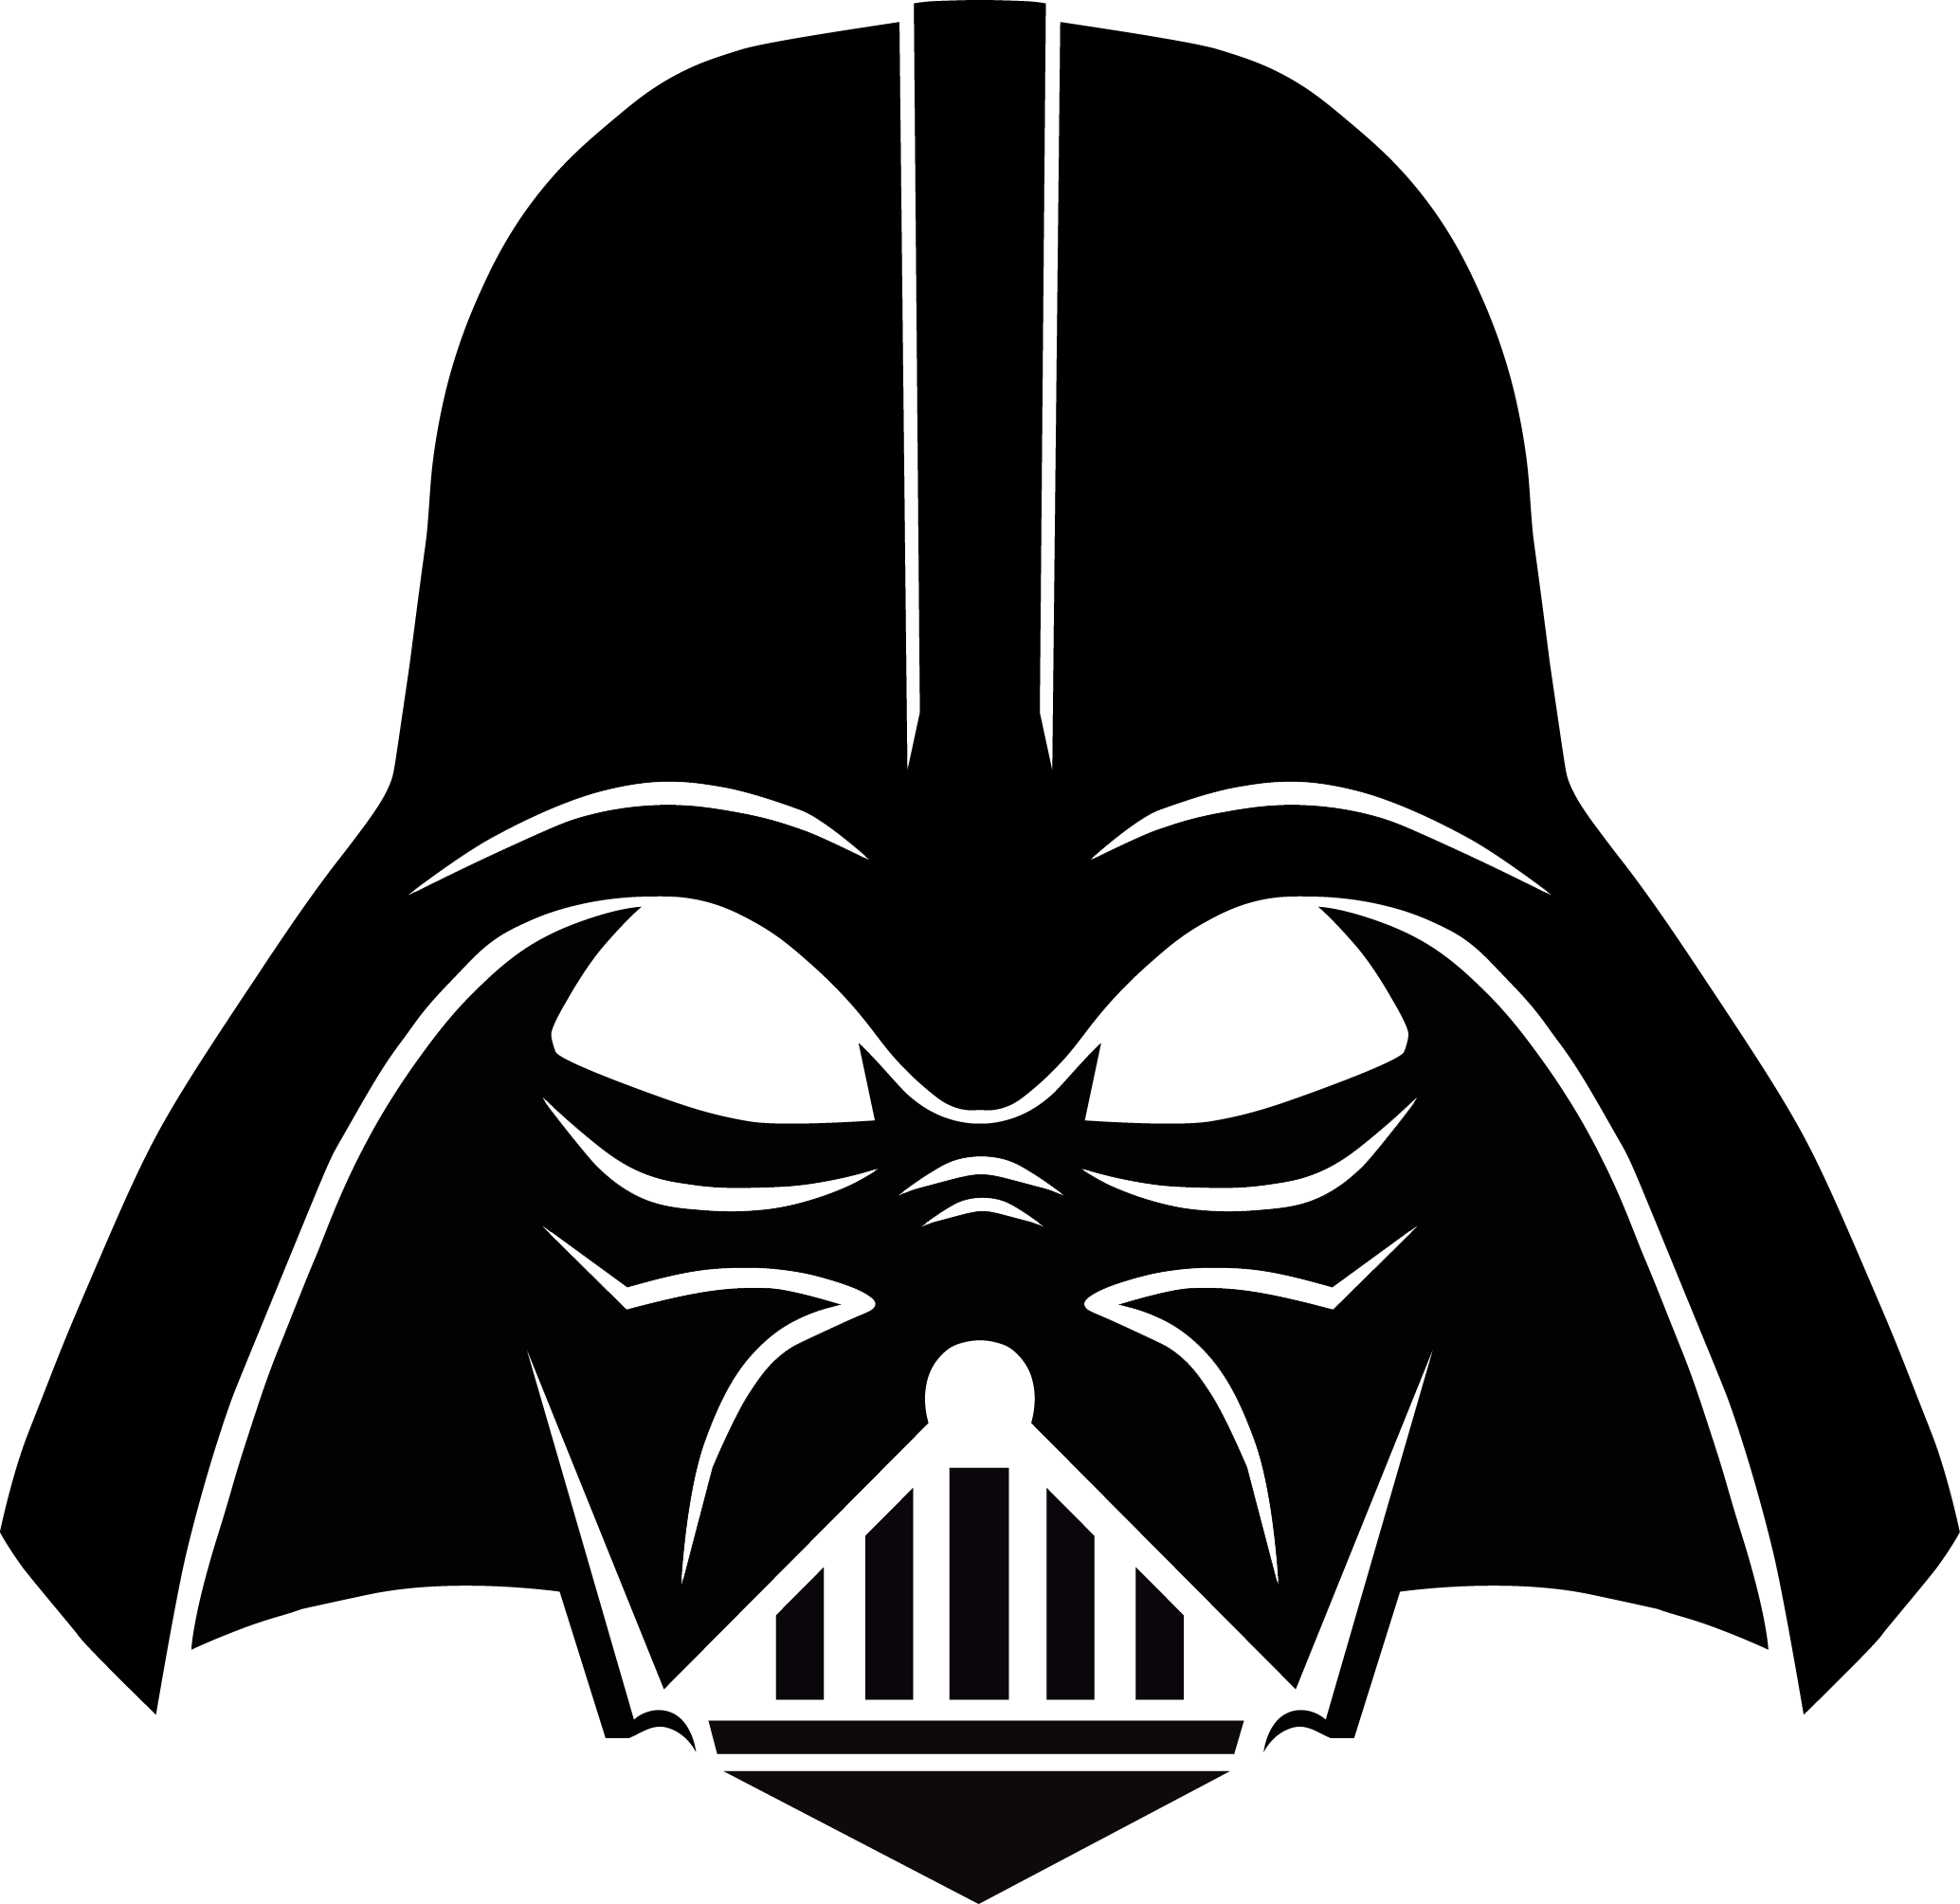 Darth vader clipart. Stencil free download pinterest